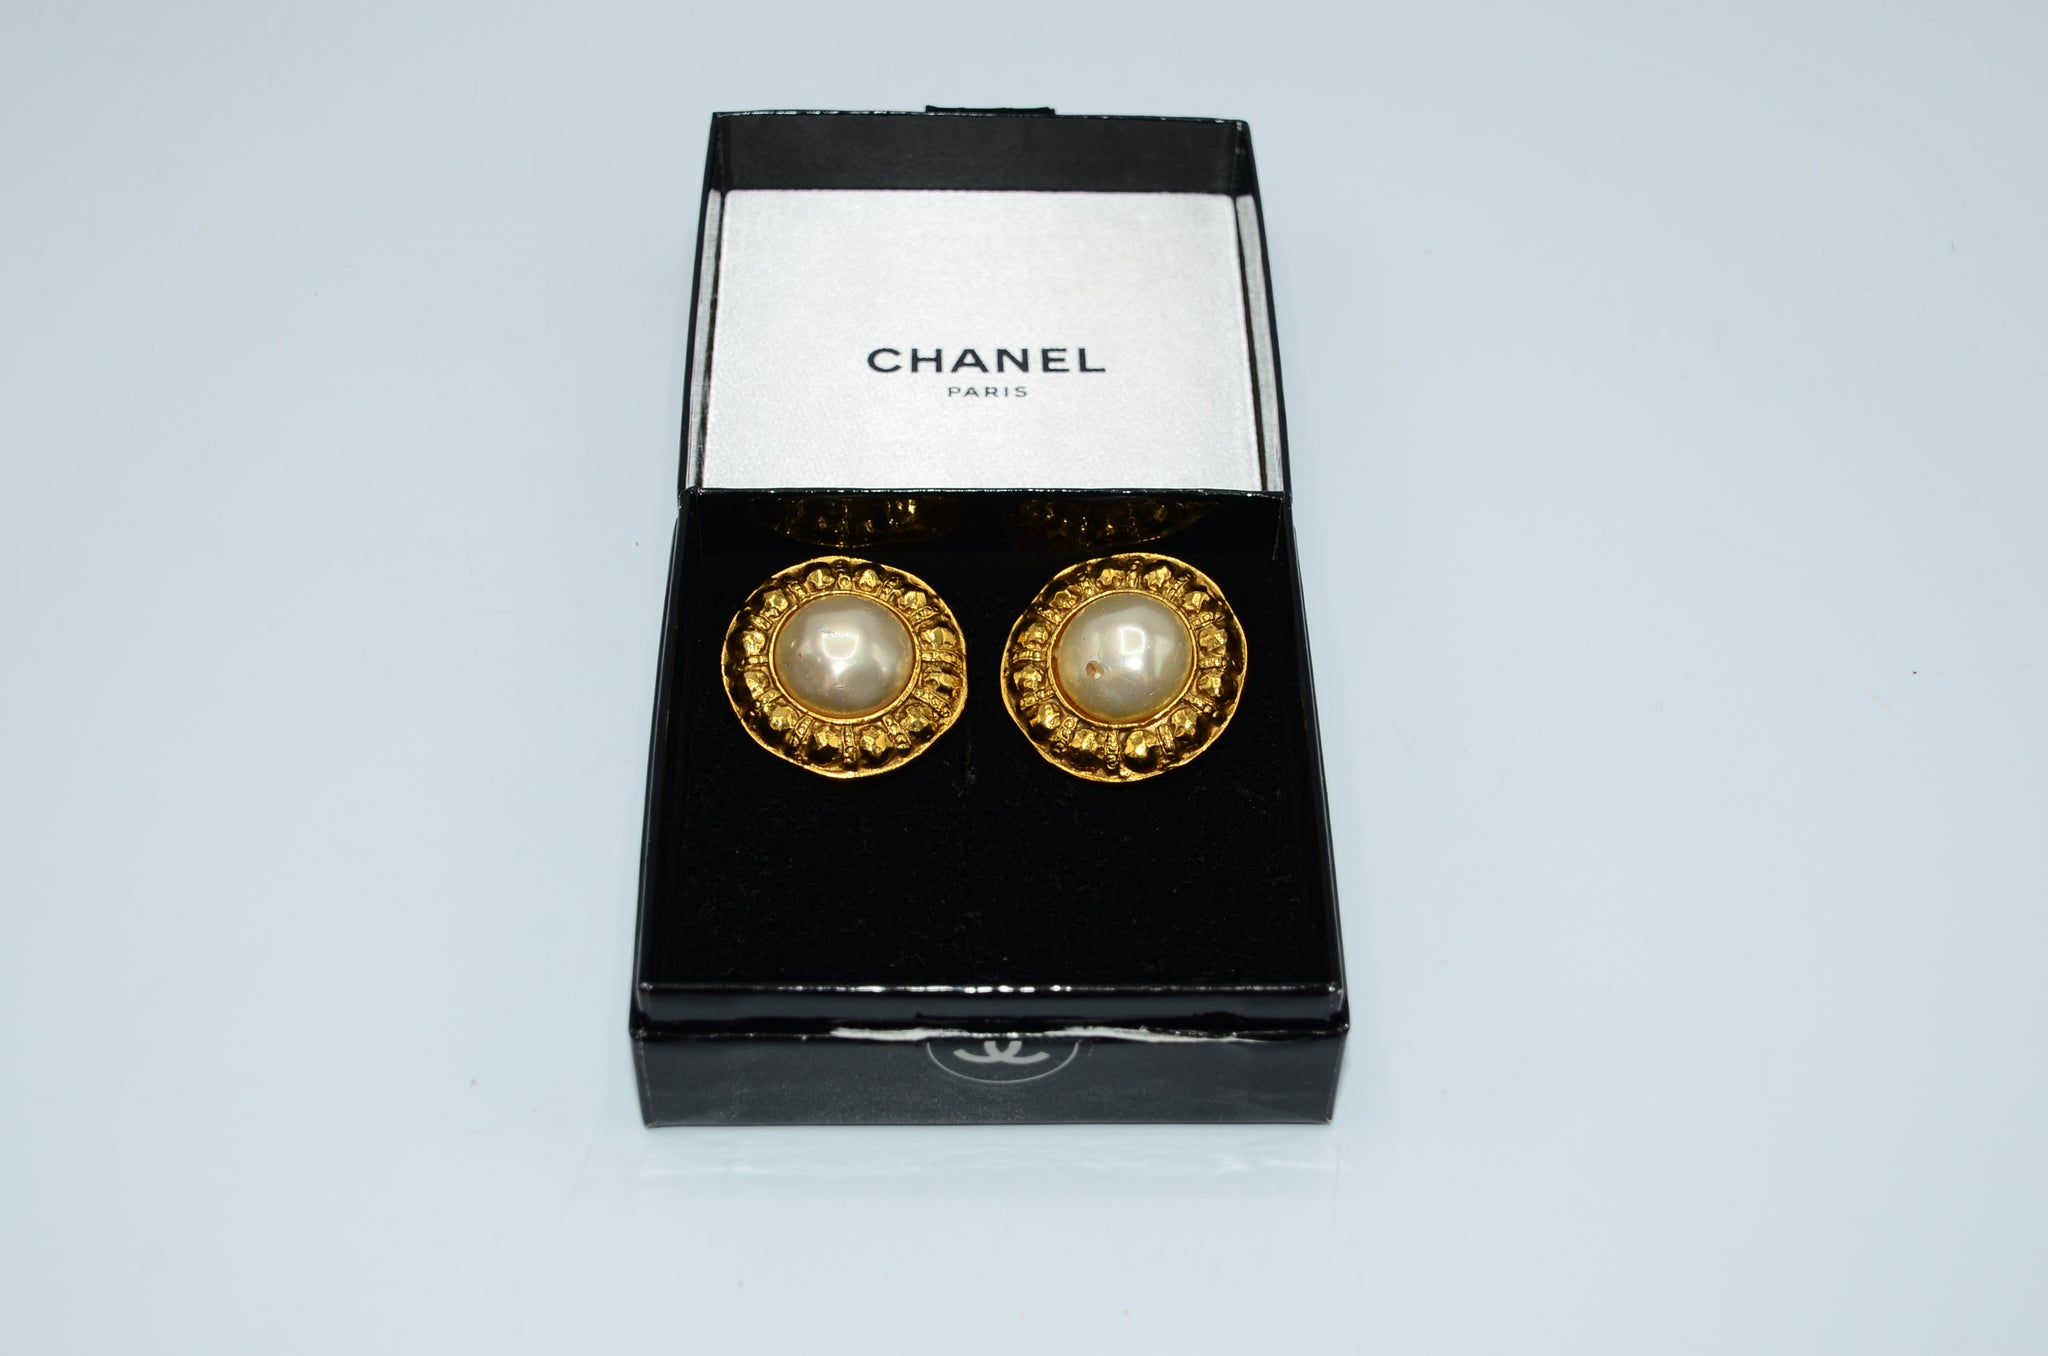 Chanel Vintage Earrings - Iconics Preloved Luxury